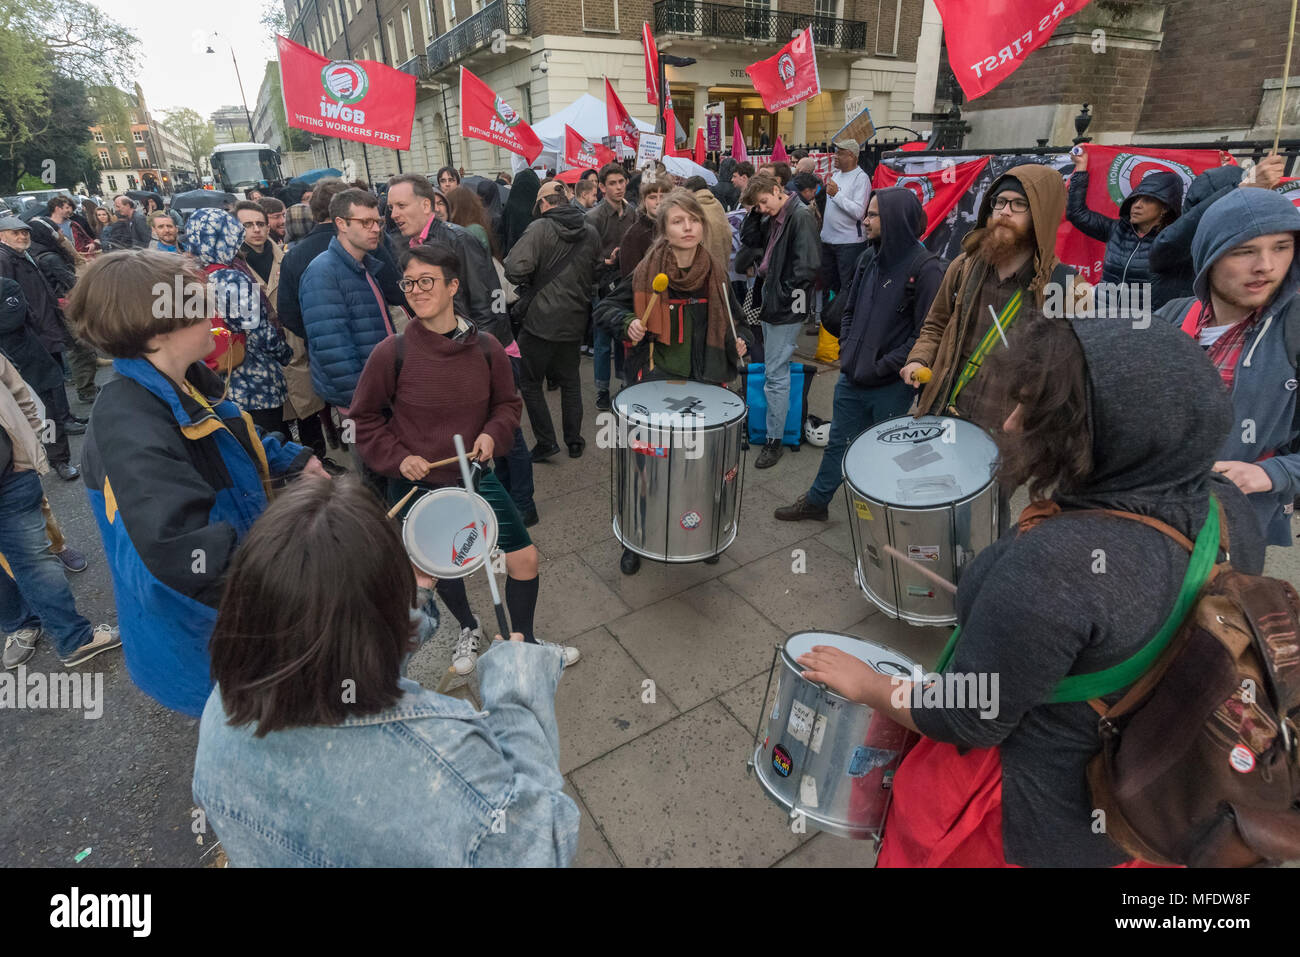 London, UK. 25th April 2018. A samba band plays at the rally by workers, students and other trade unionists supporting over 100 cleaners, porters, security officers, receptionists, gardeners, post room staff and audiovisual staff in the Independent Workers Union of Great Britain - IWGB at the end of the first day of a two day strike at the University of London central administration. The workers, employed by various outsourcing companies are demanding to be directly employed by the University, and receive the same conditions and benefits as directly employed colleagues; outsourced workers rece - Stock Image